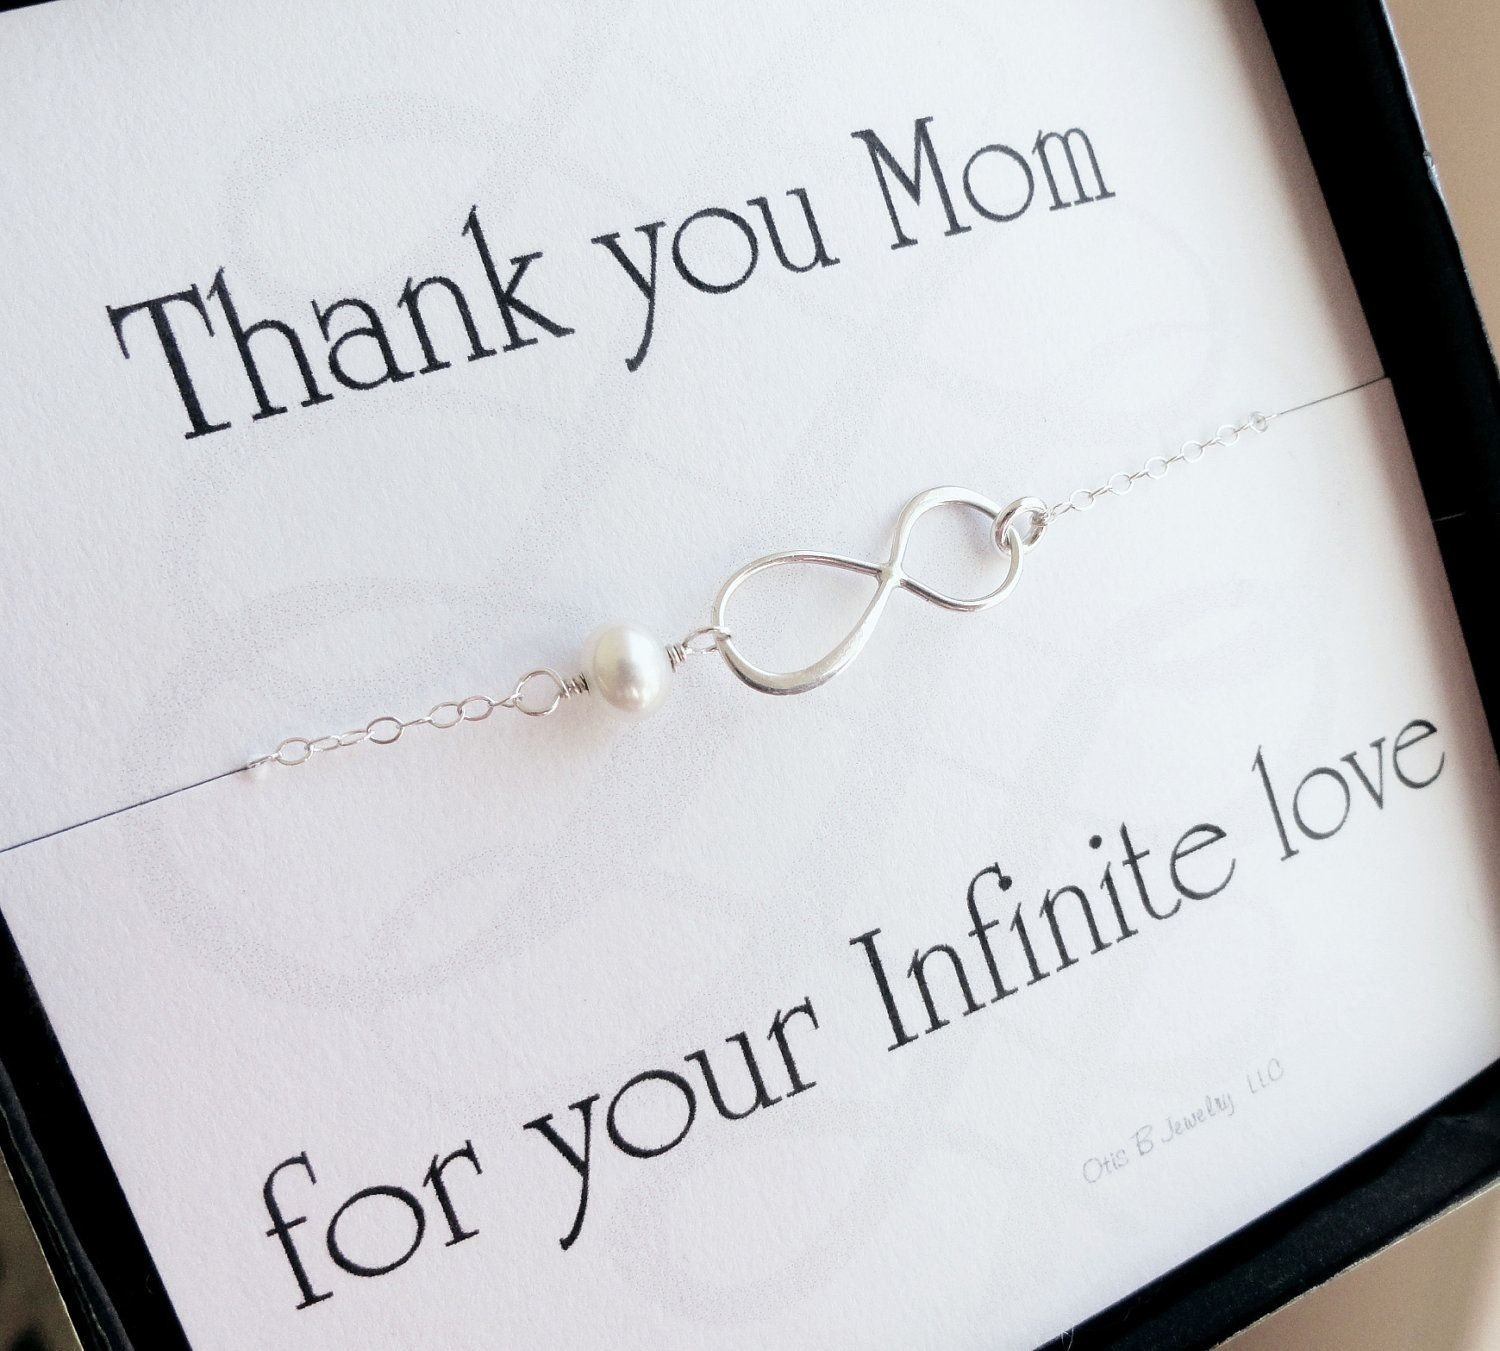 10 Awesome Mother Of The Bride Gifts Ideas mother of the bride or groom gift infinity bracelets mother of the 1 2021